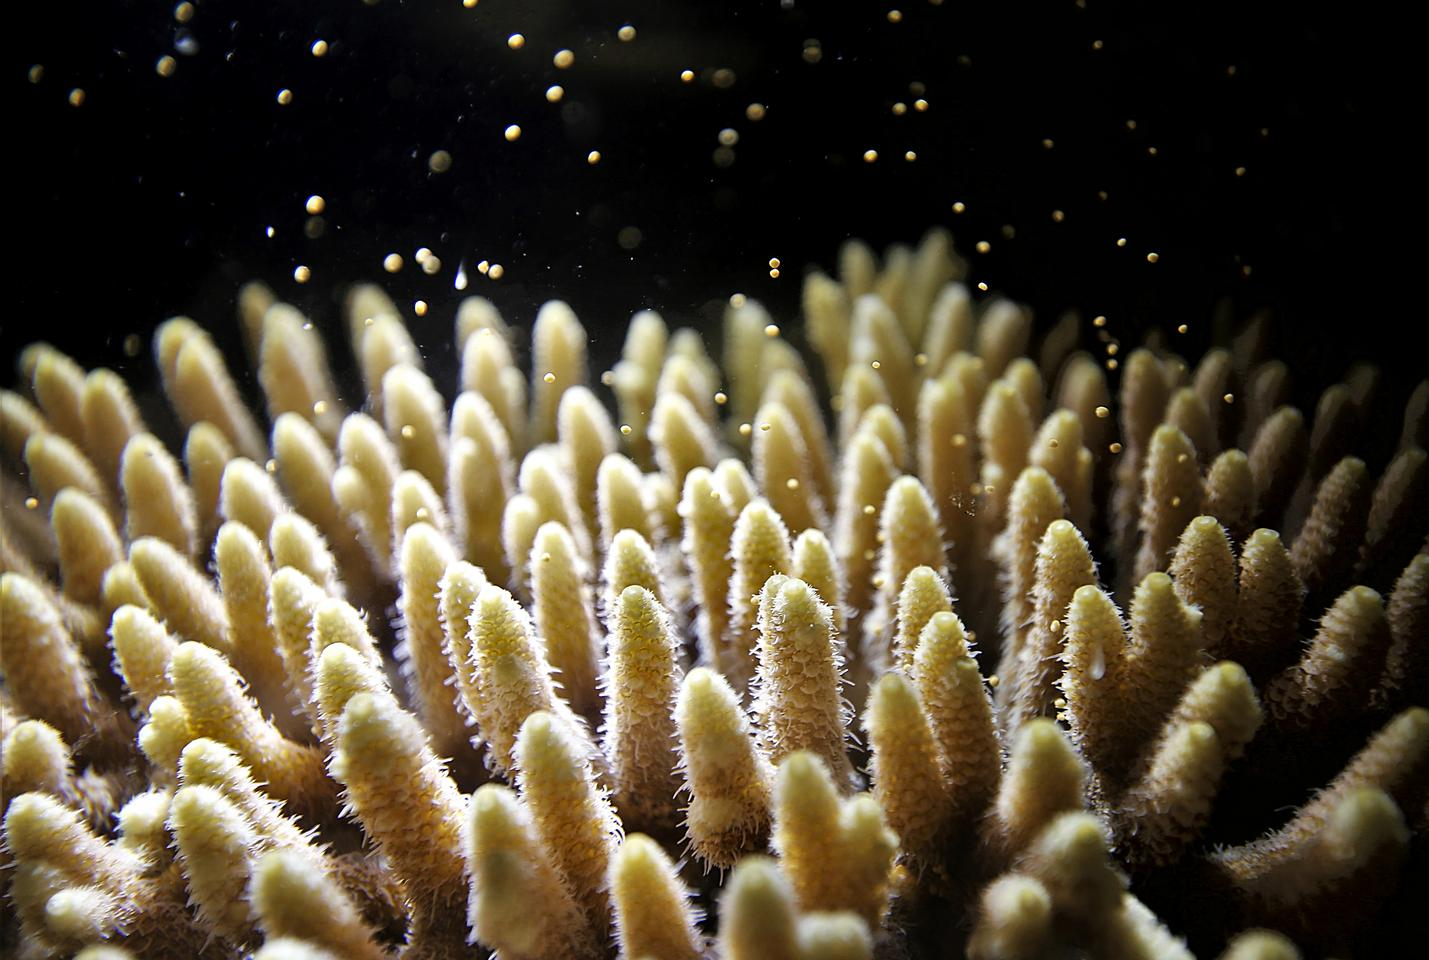 Close-up image of corals releasing sperm and eggs for cross-fertilization